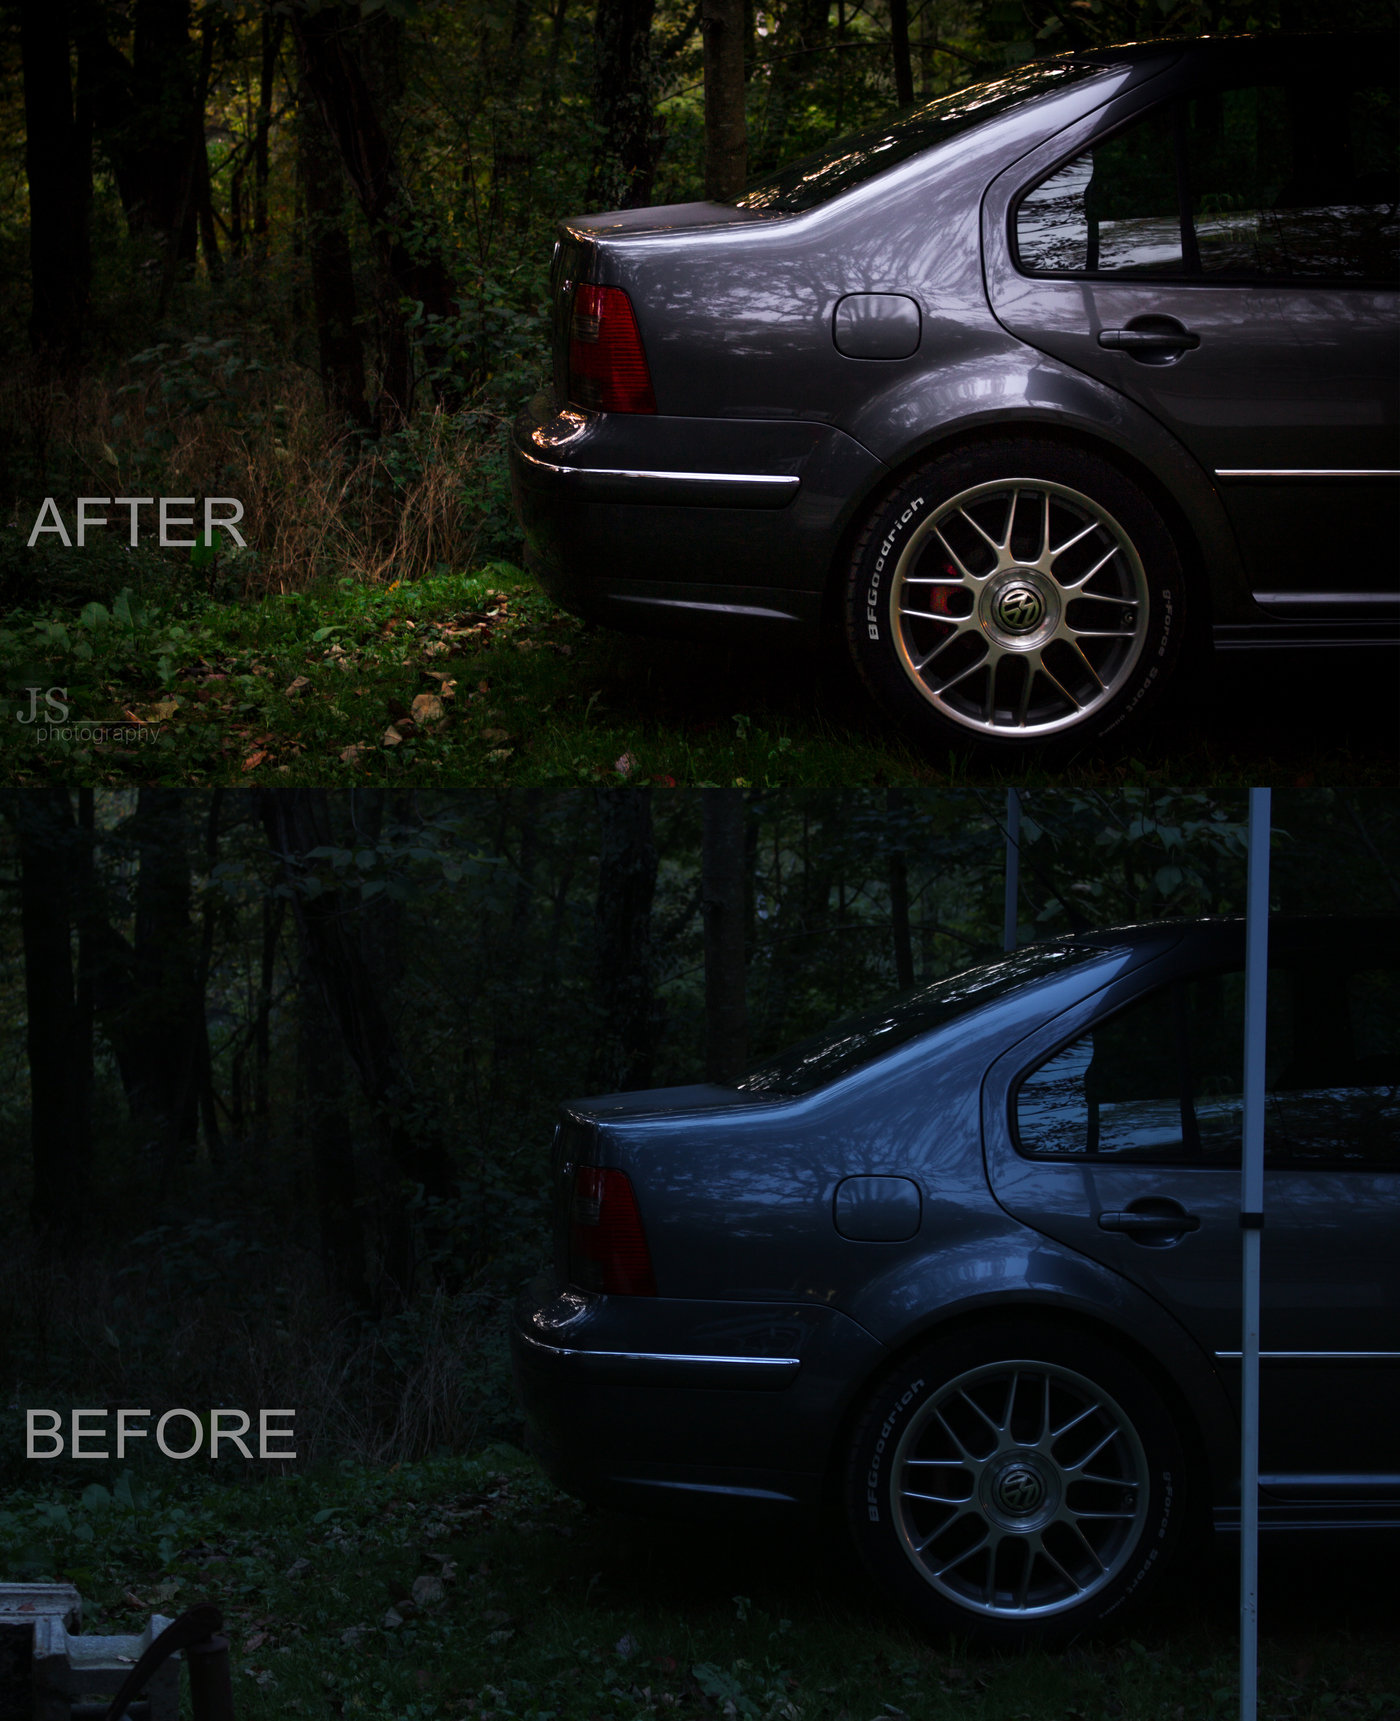 Before And After Photo Editing Examples By Josh Sikora At Coroflot Com